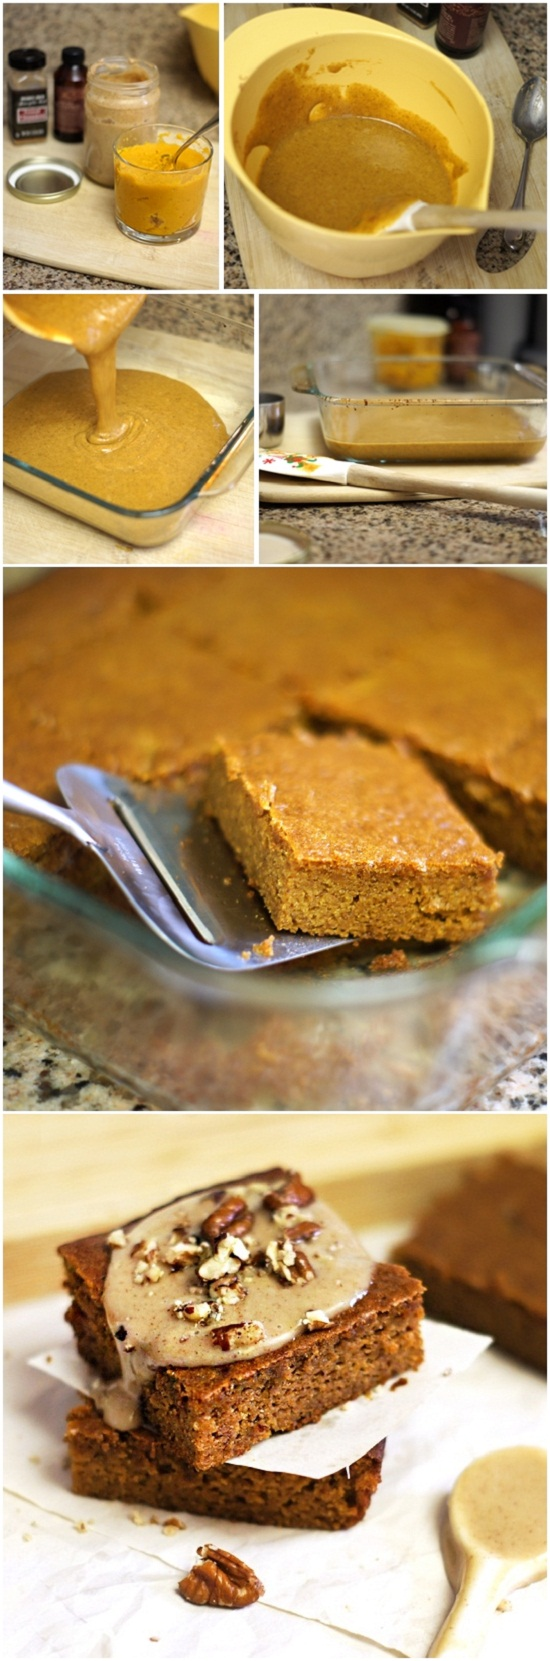 Grain-Free-Pumpkin-Bars-Recipe